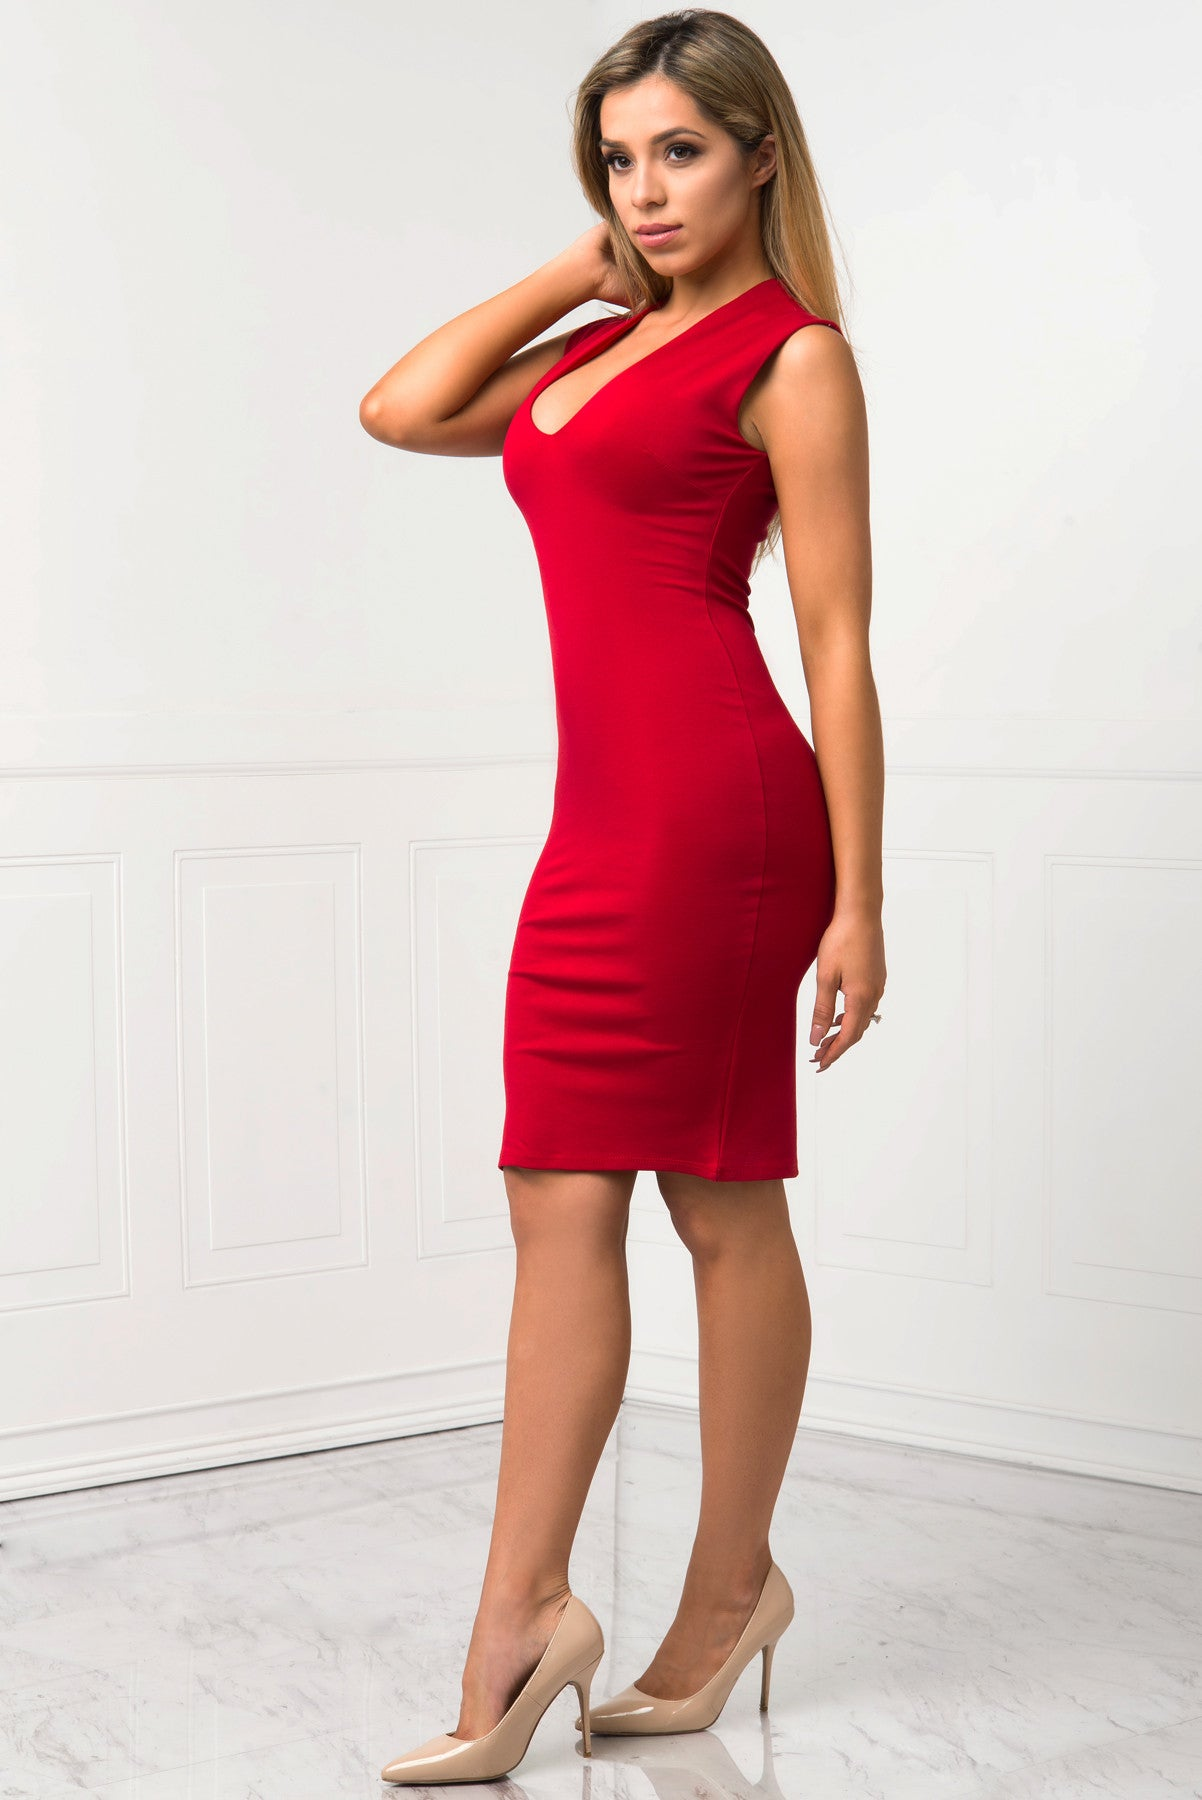 Danielle Red Dress - Fashion Effect Store  - 2